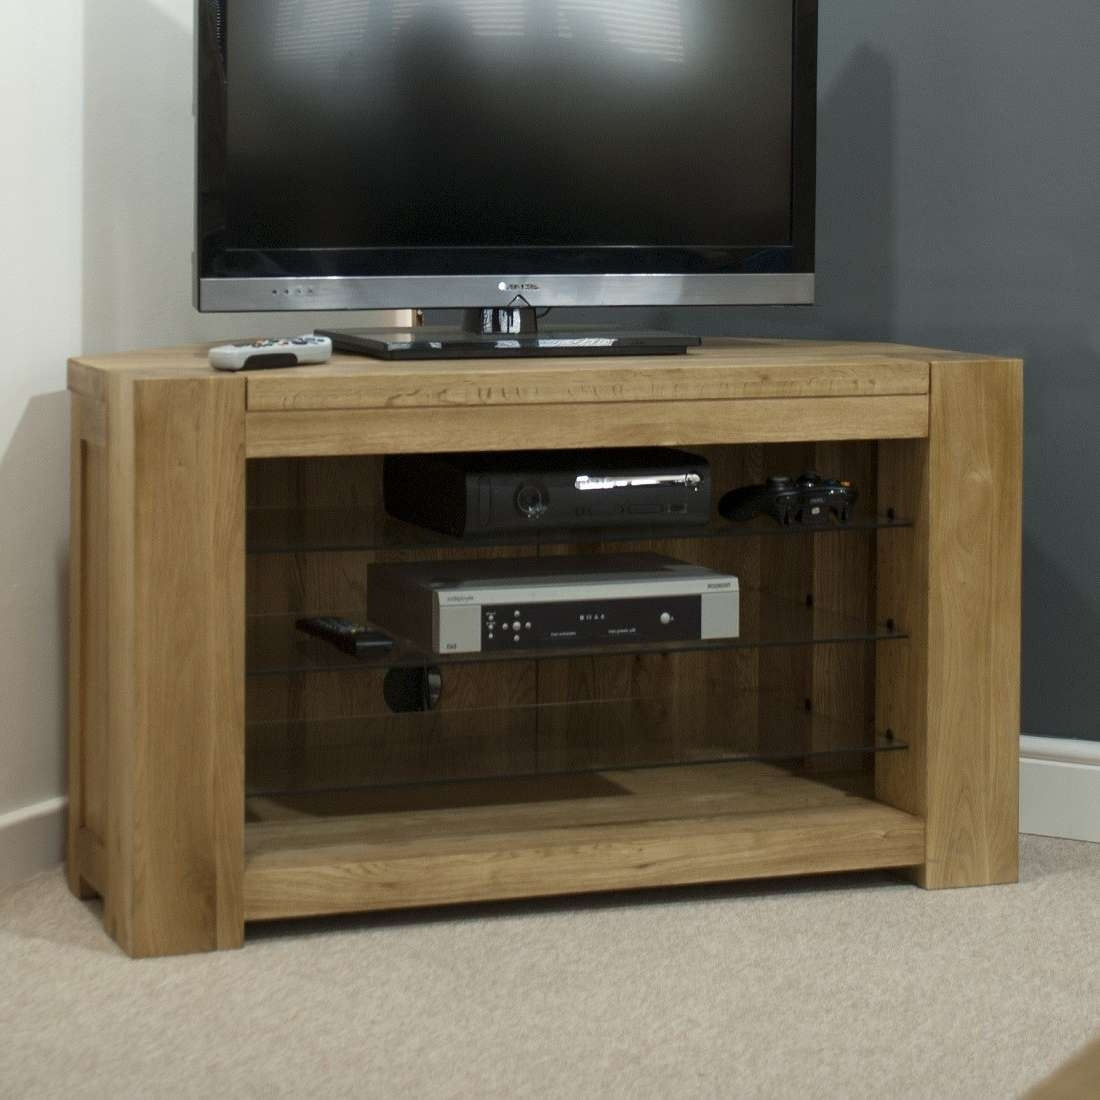 Trend Solid Oak Corner Tv Unit | Oak Furniture Uk Pertaining To Oak Tv Cabinets For Flat Screens (View 11 of 20)